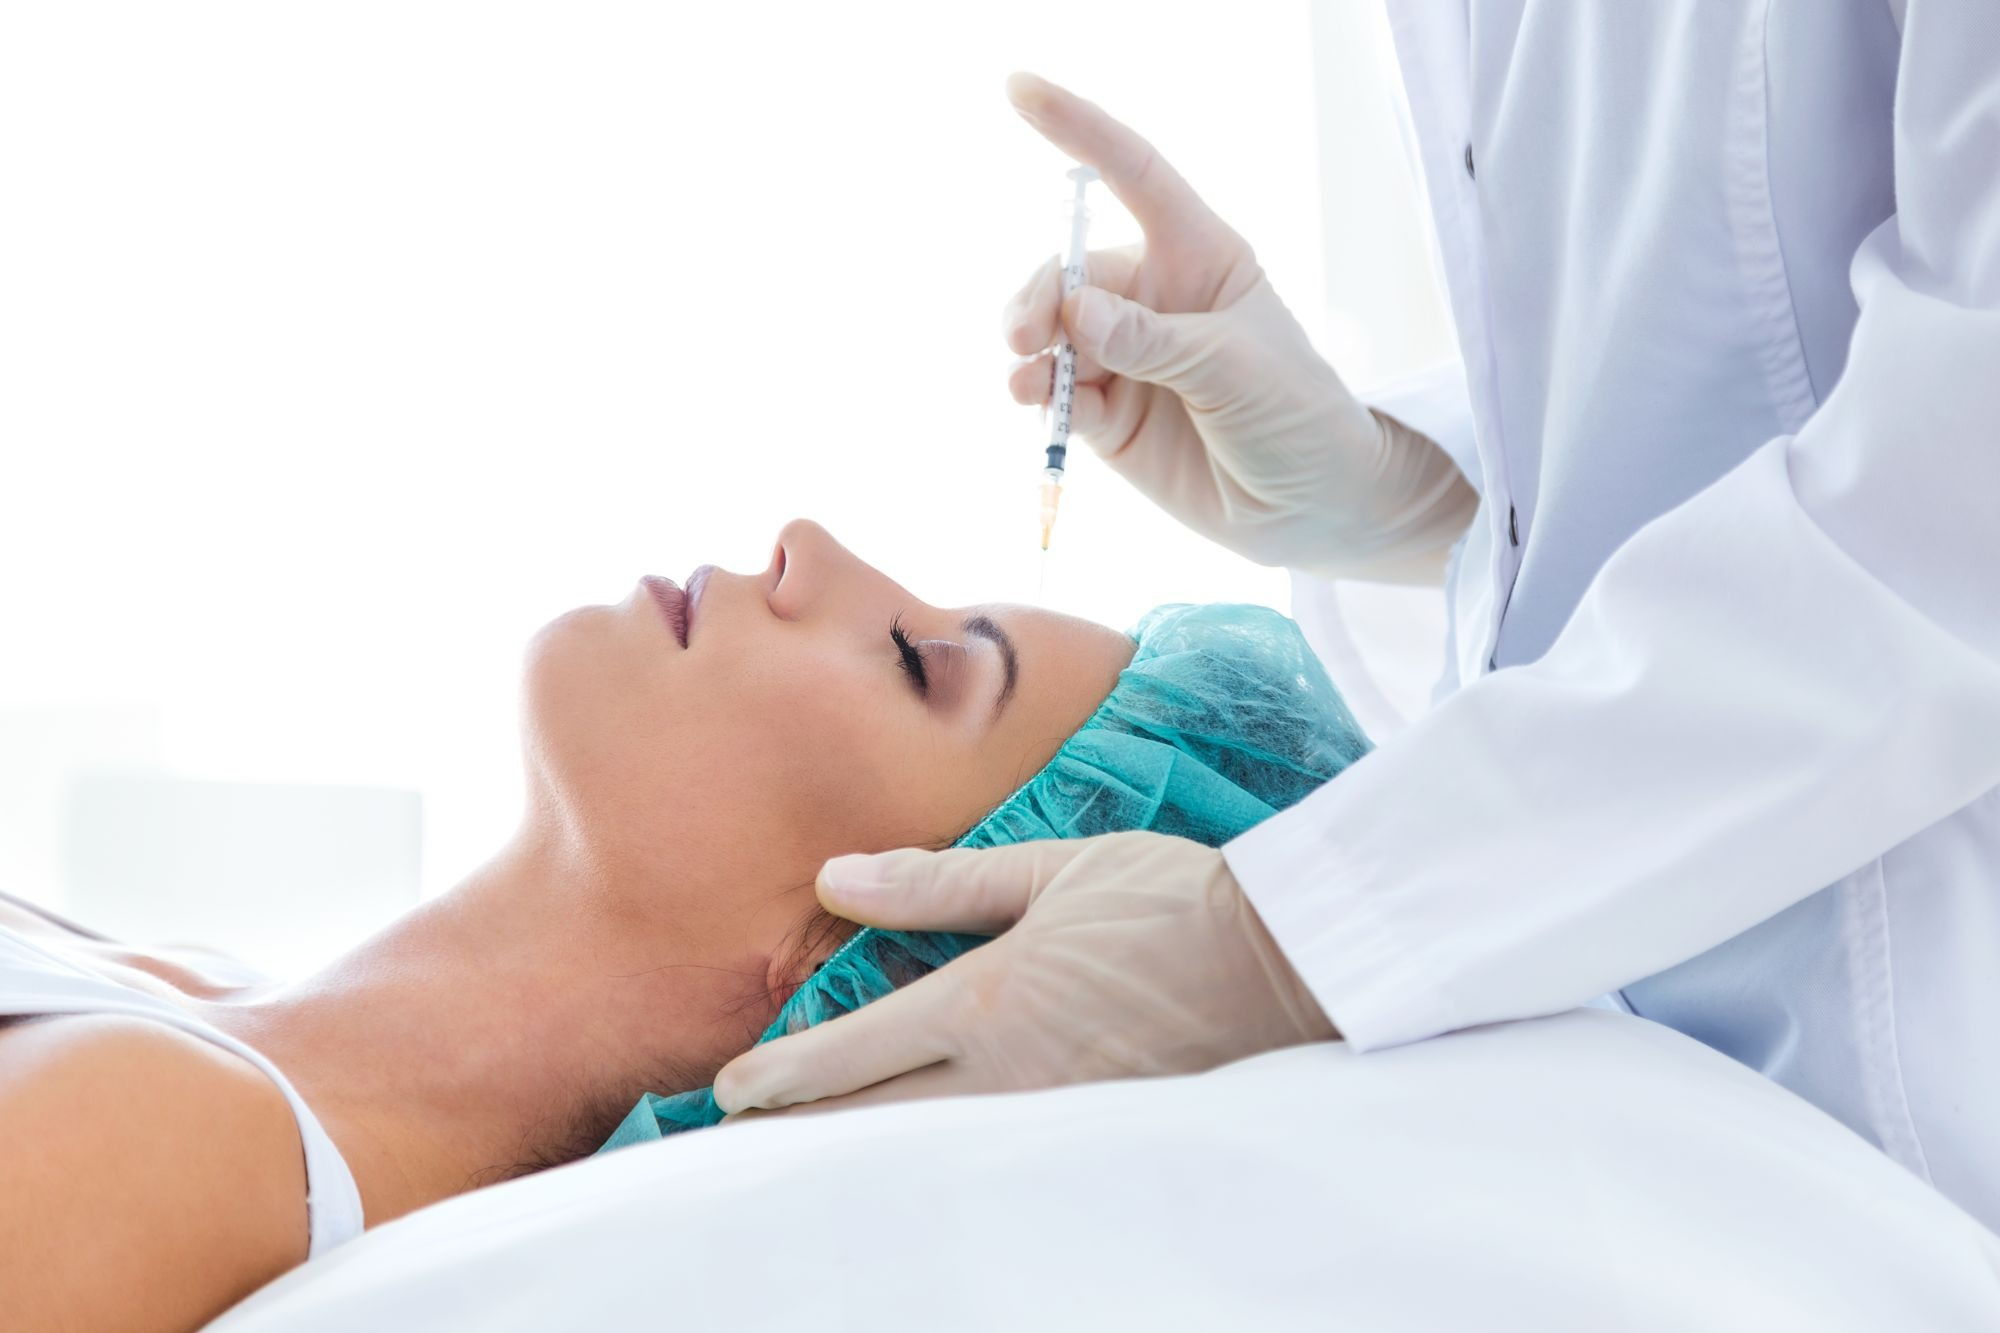 beautiful-young-woman-getting-botox-cosmetic-injection-her-face-1624979747.jpg